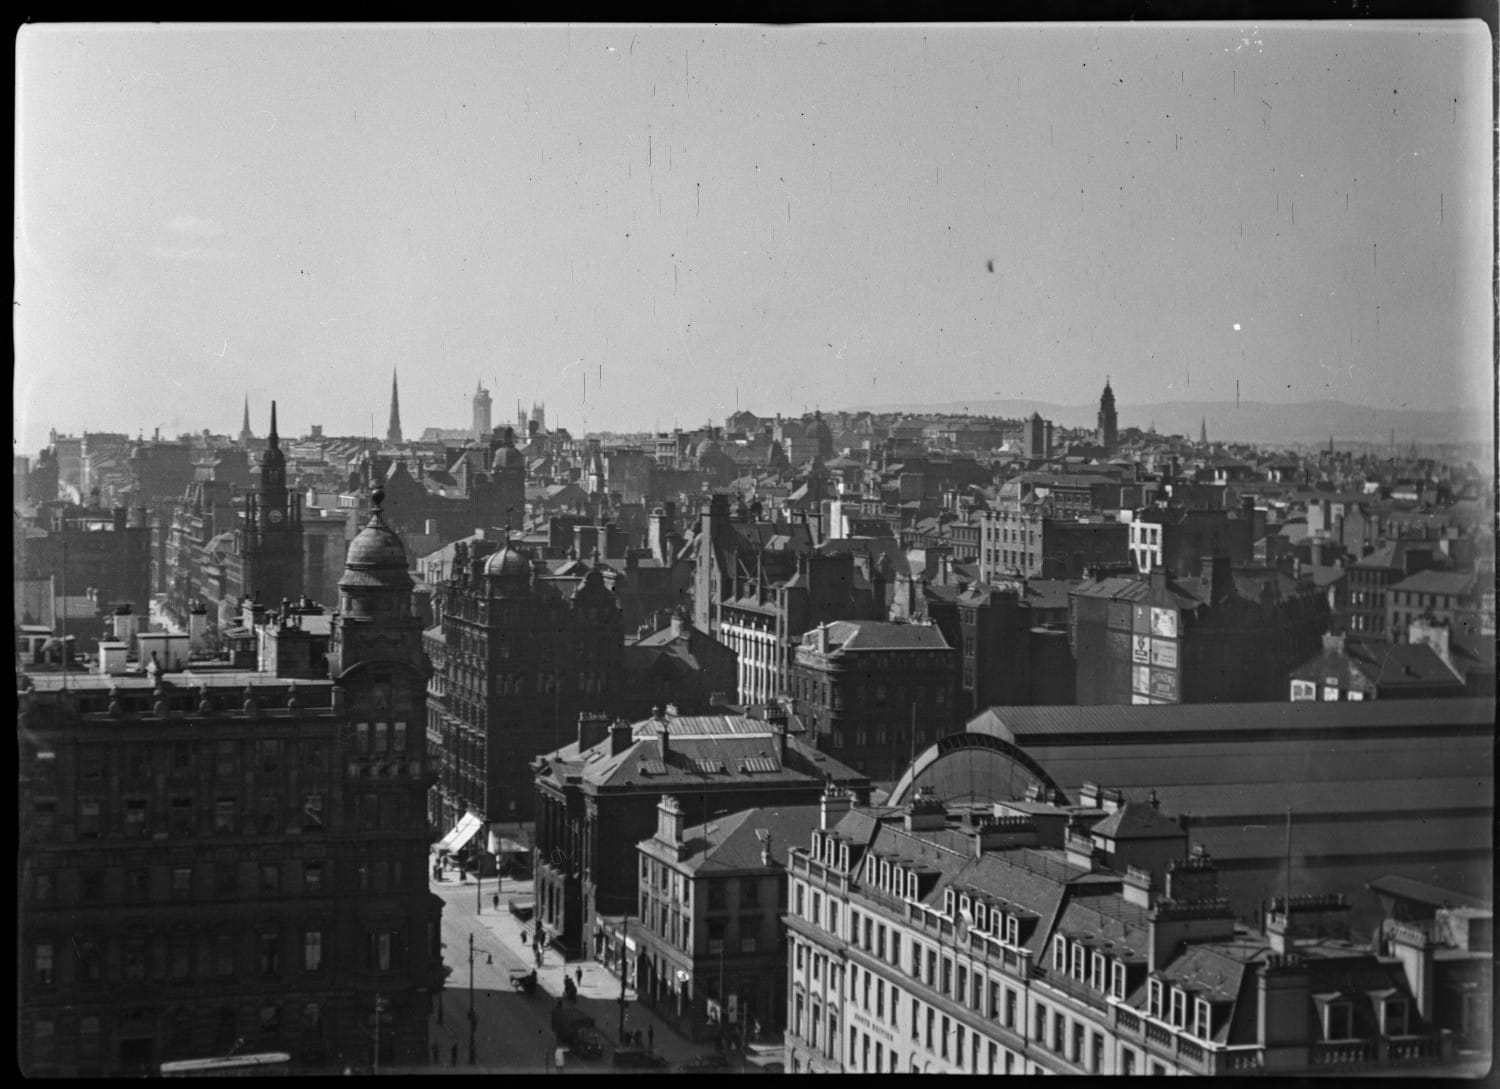 Looking west from the roof of the City Chambers